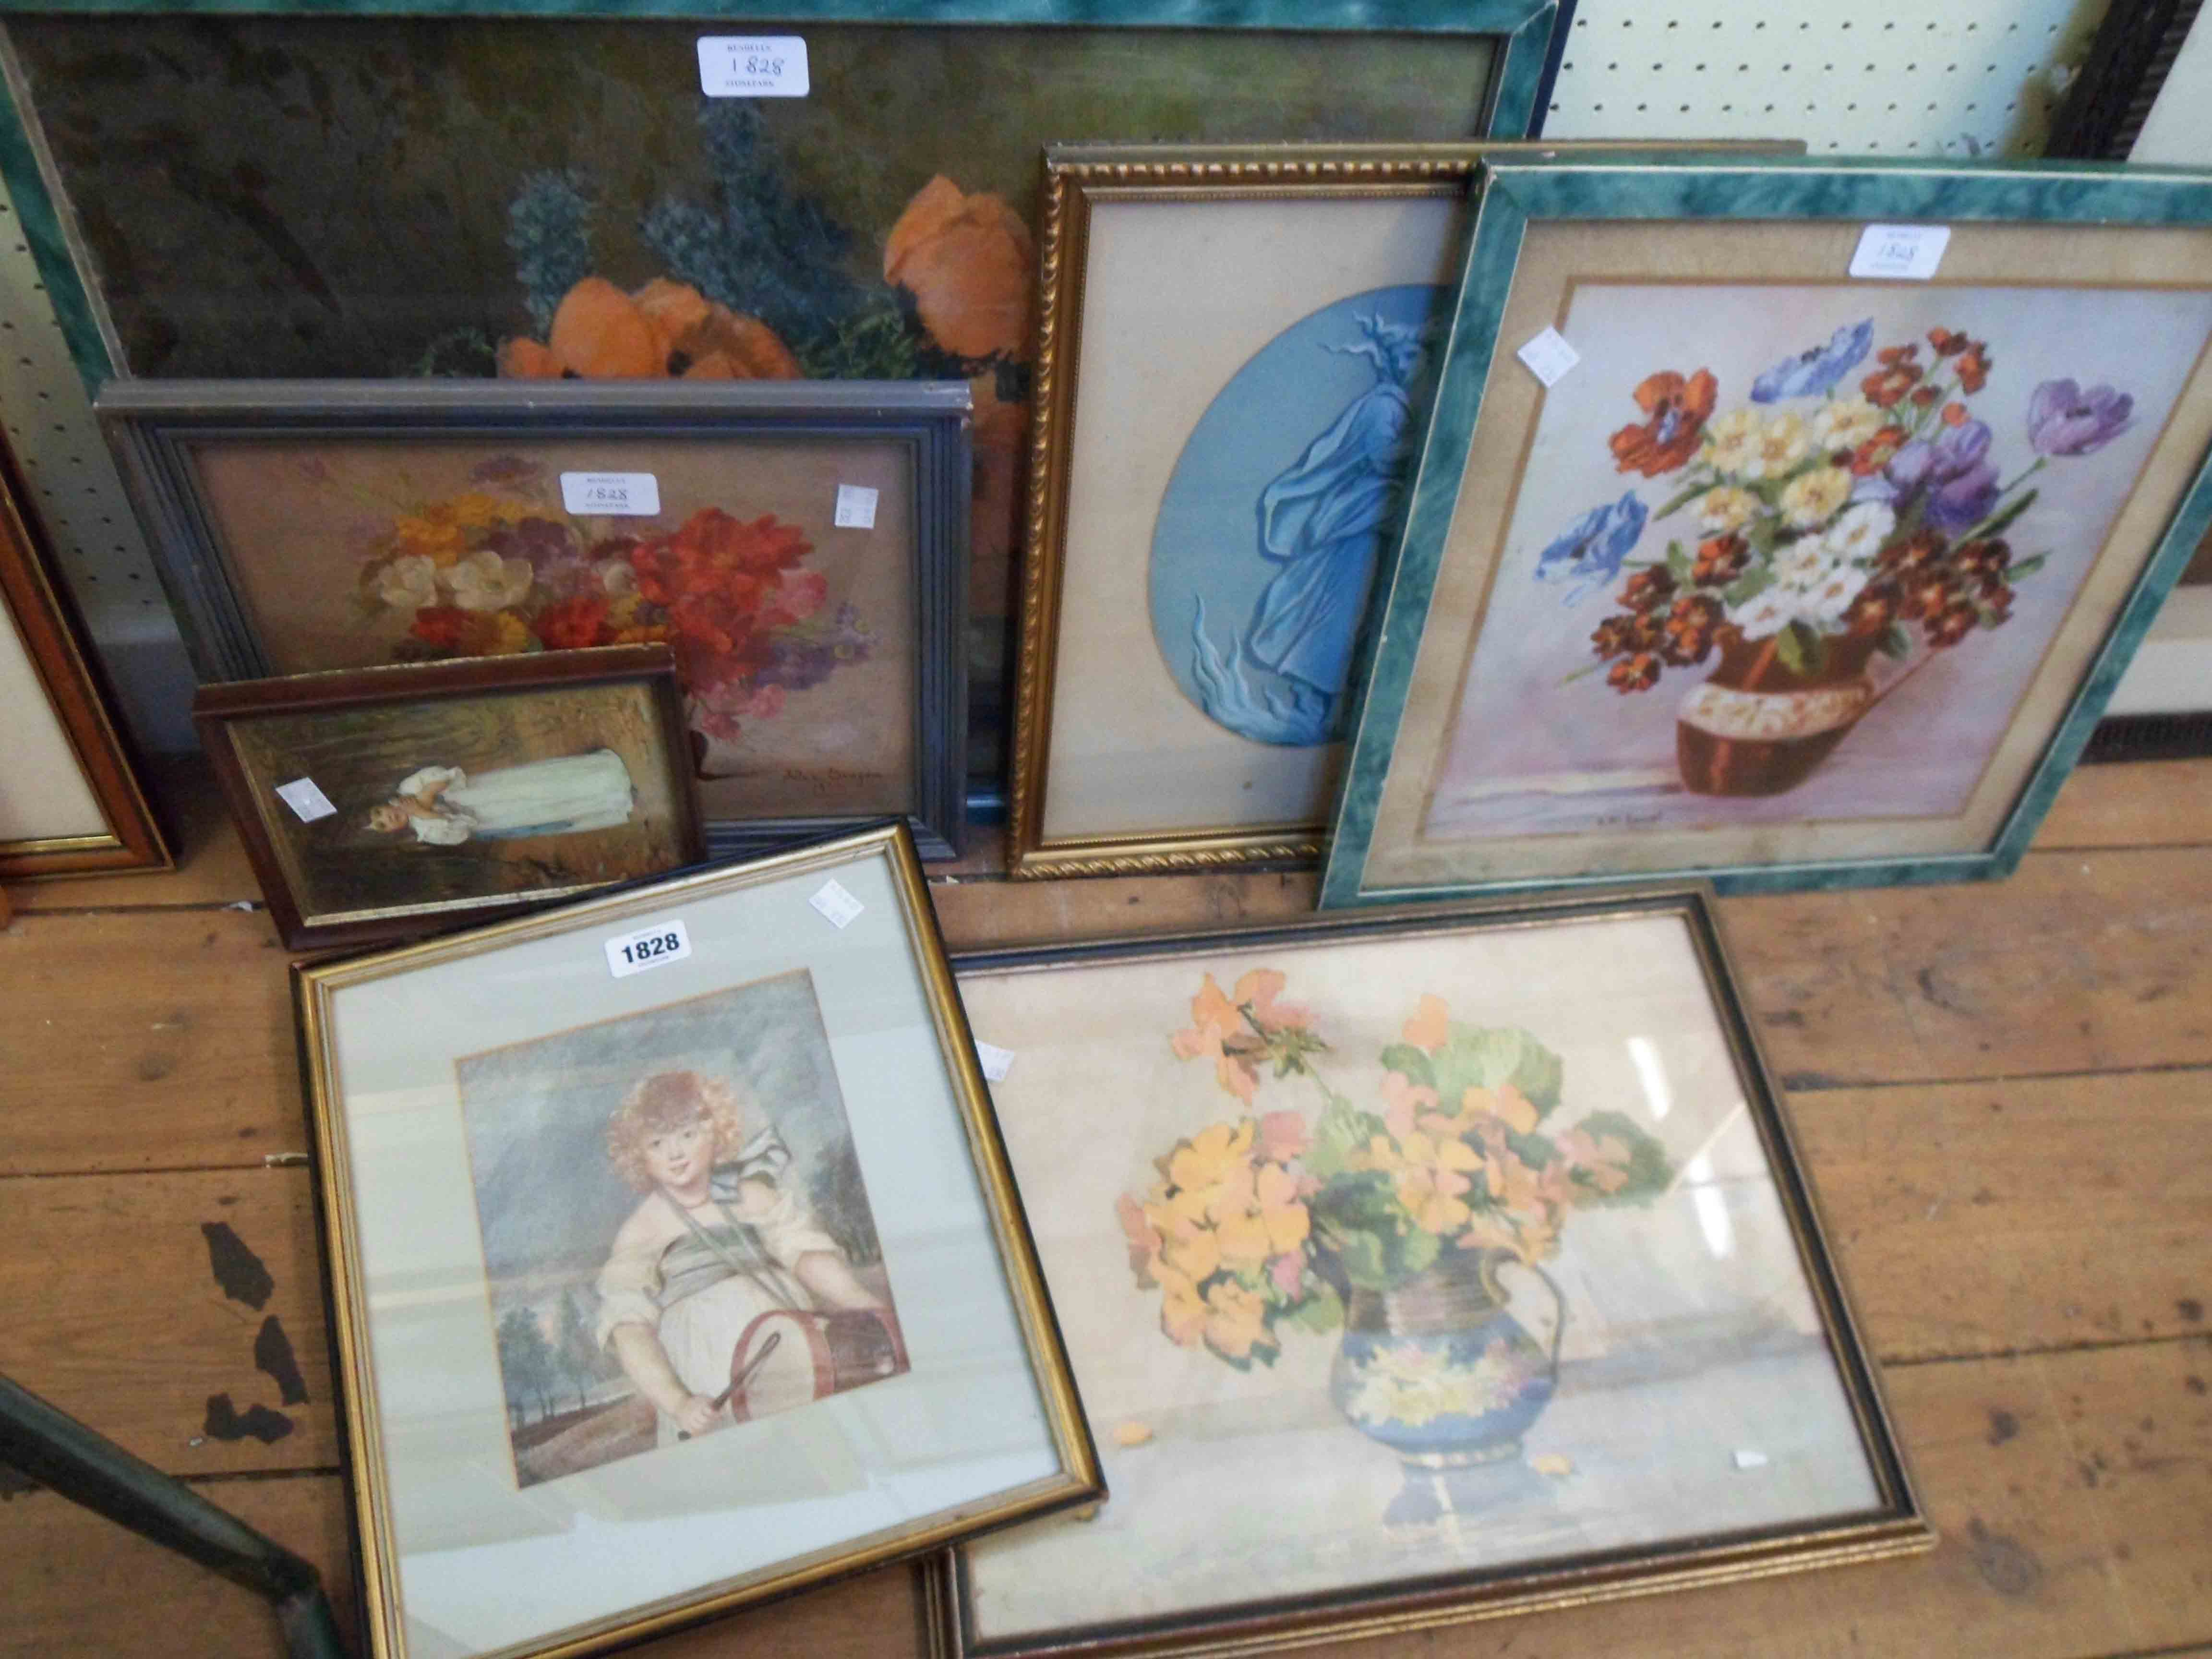 A selection of framed coloured prints including vintage floral studies and portrait of a boy playing